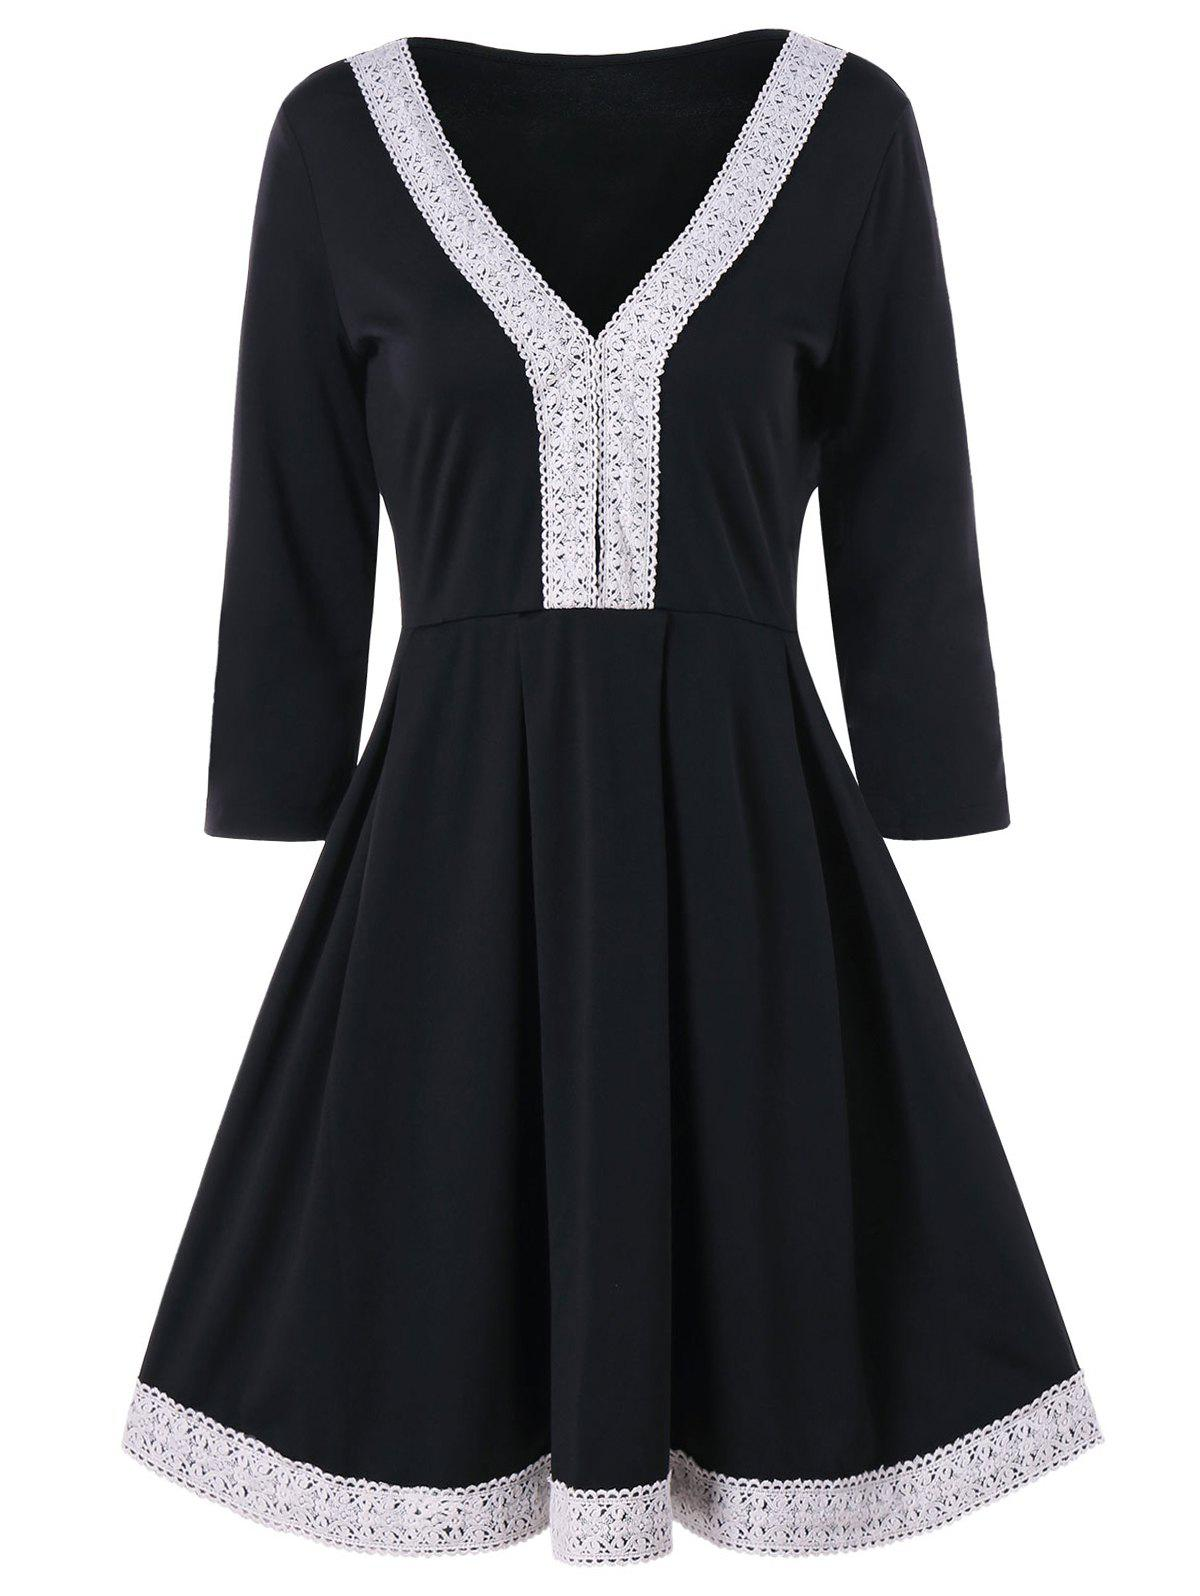 Hot Cochet Lace Trim Fit and Flare Dress